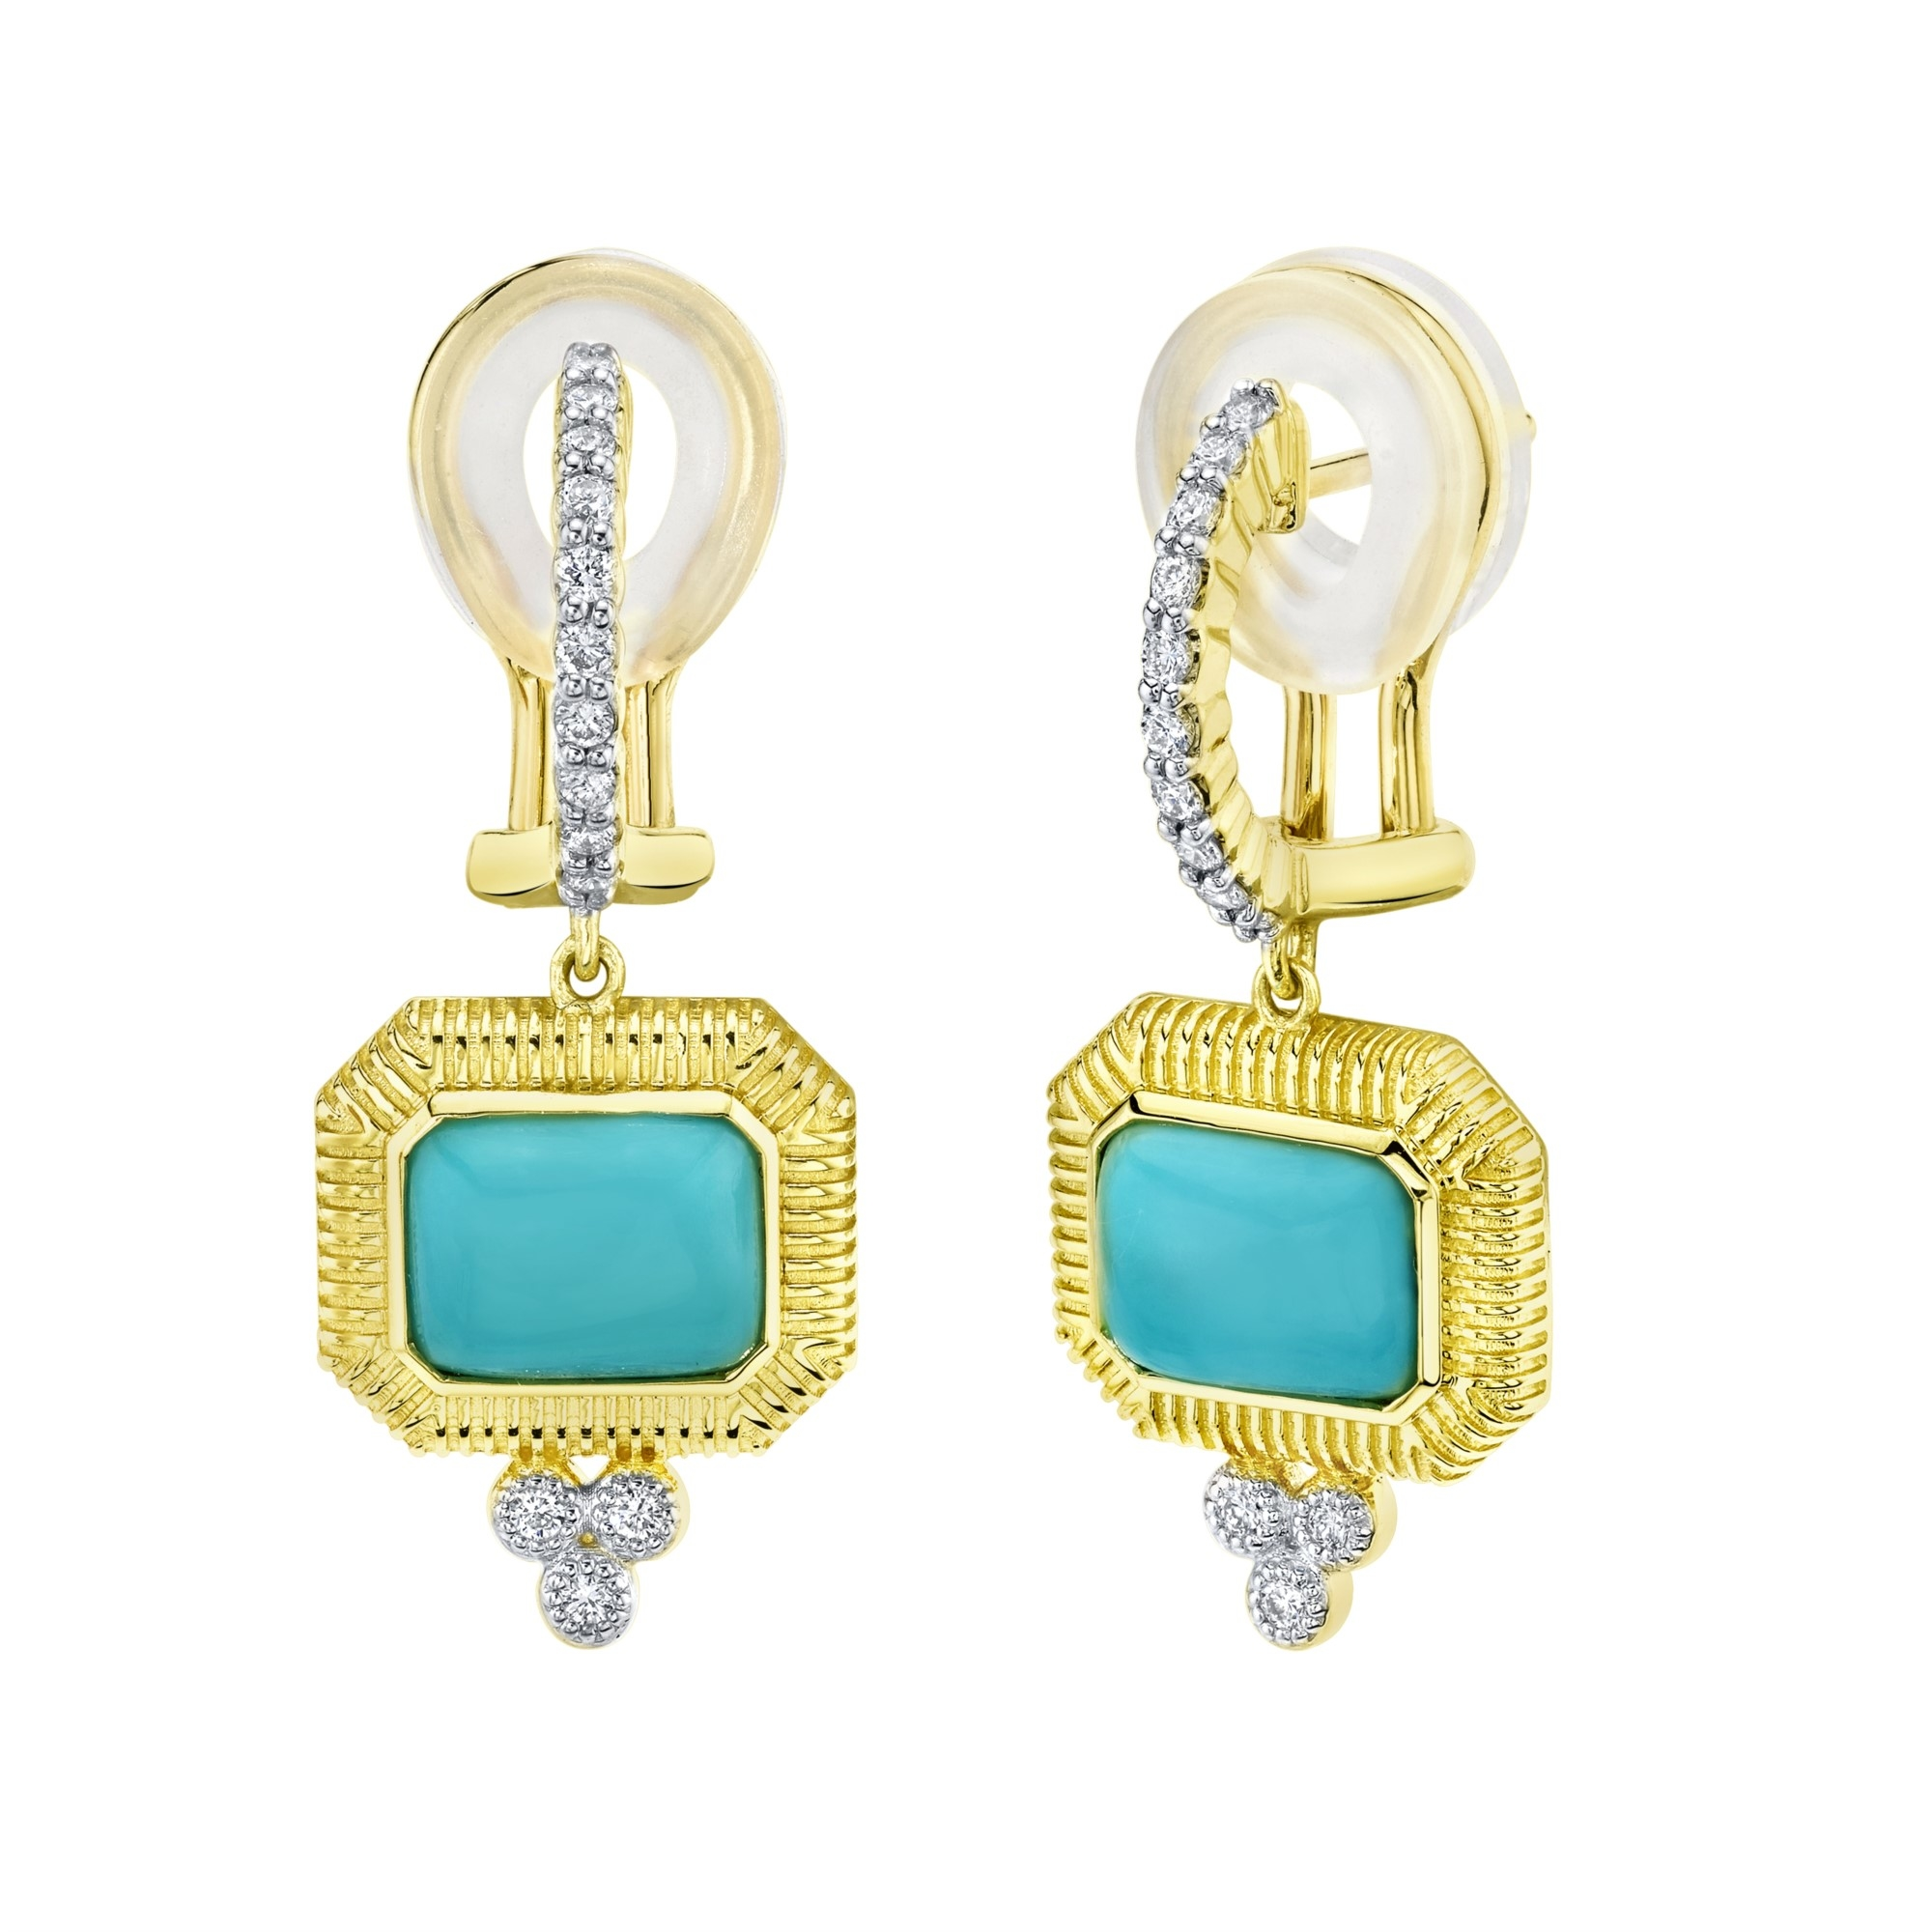 Sloane Street 18K Yellow Gold .26cts  Diamonds Gold Earrings with Stones E017F-TQ-WDCB-Y